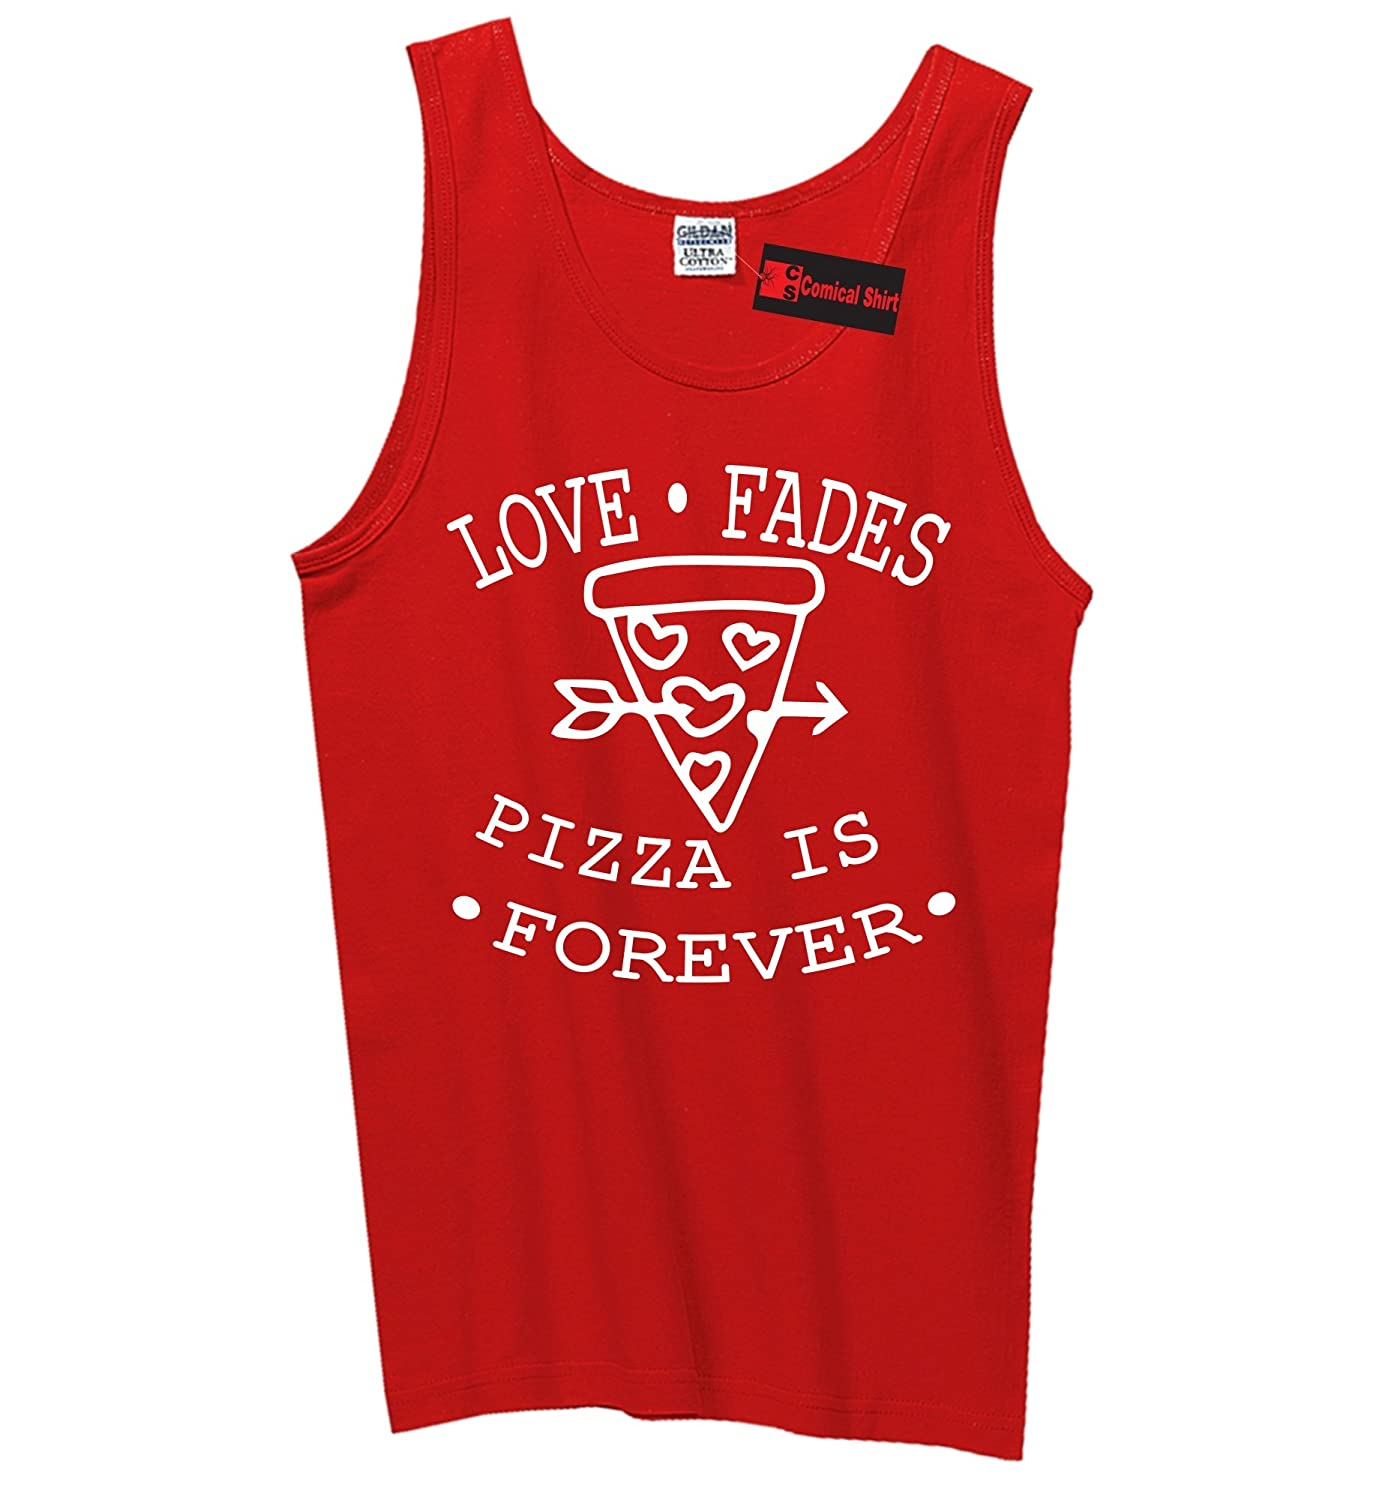 Comical Shirt Men's Love Fades Pizza Is Forever Funny Valentines Day Tank Top